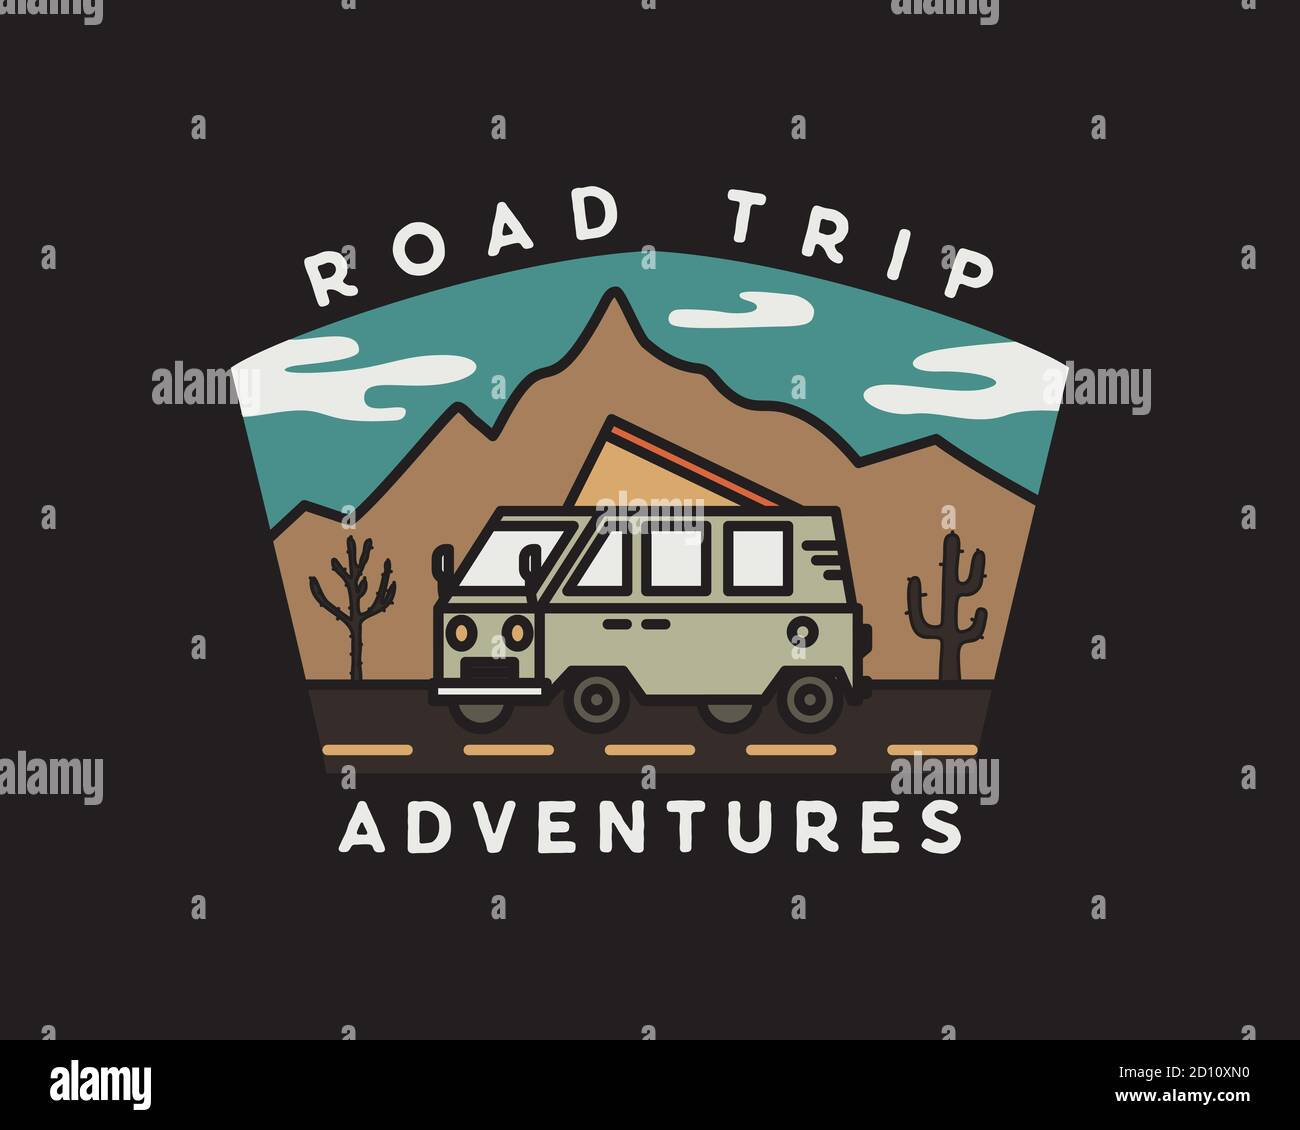 Vintage road trip journey badge illustration design. Outdoor emblem with RV, mountains and text - Road Trip adventures. Unusual hipster style patch Stock Vector